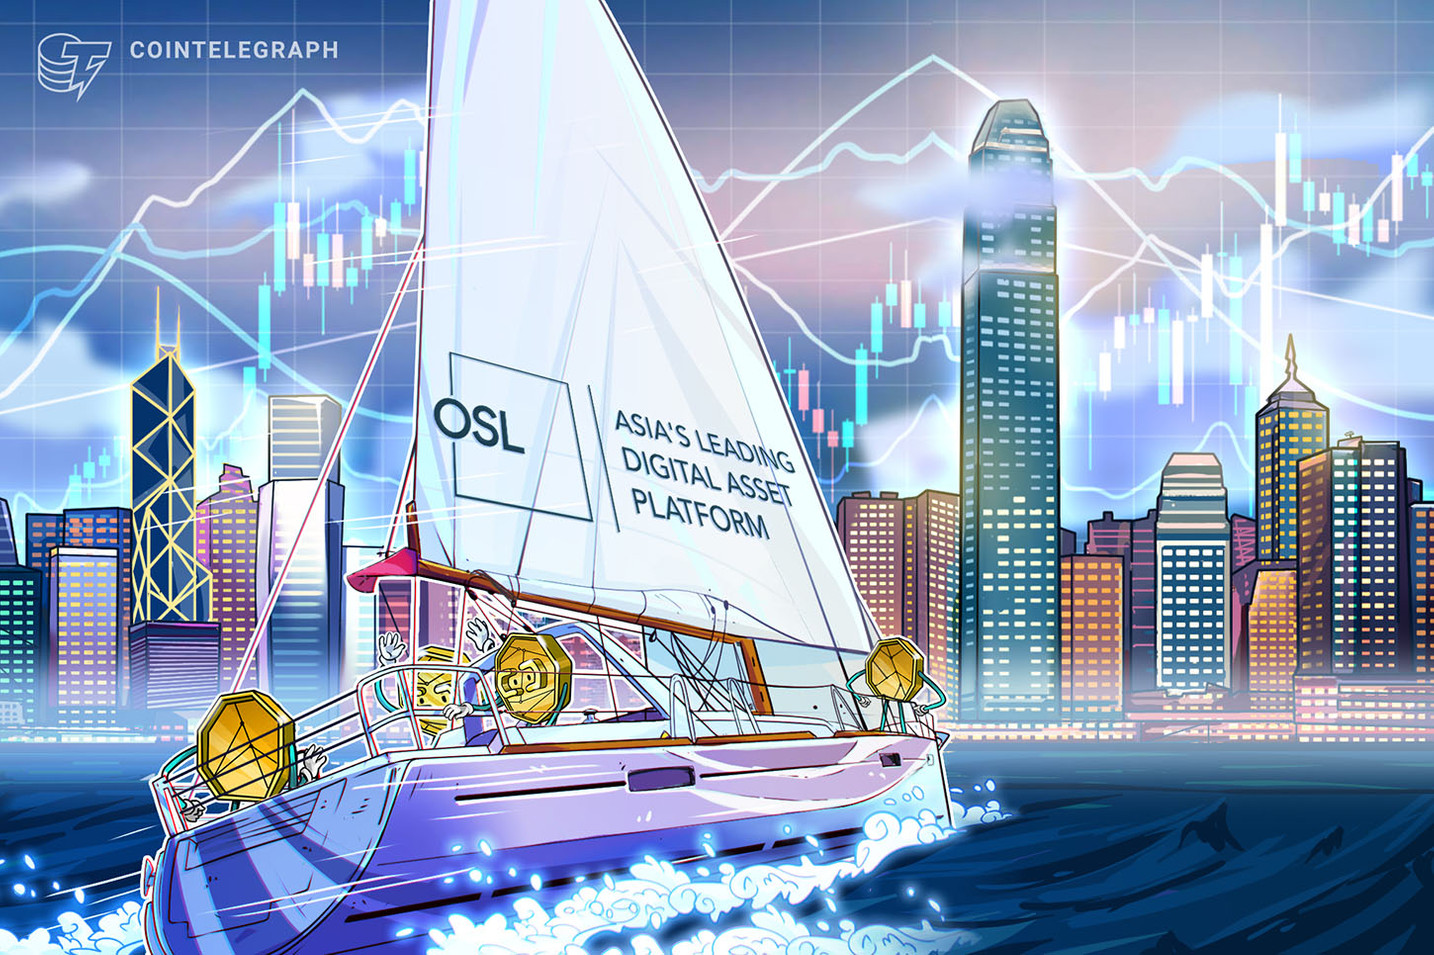 Virtual assets trading platform launches Americas unit as part of global expansion